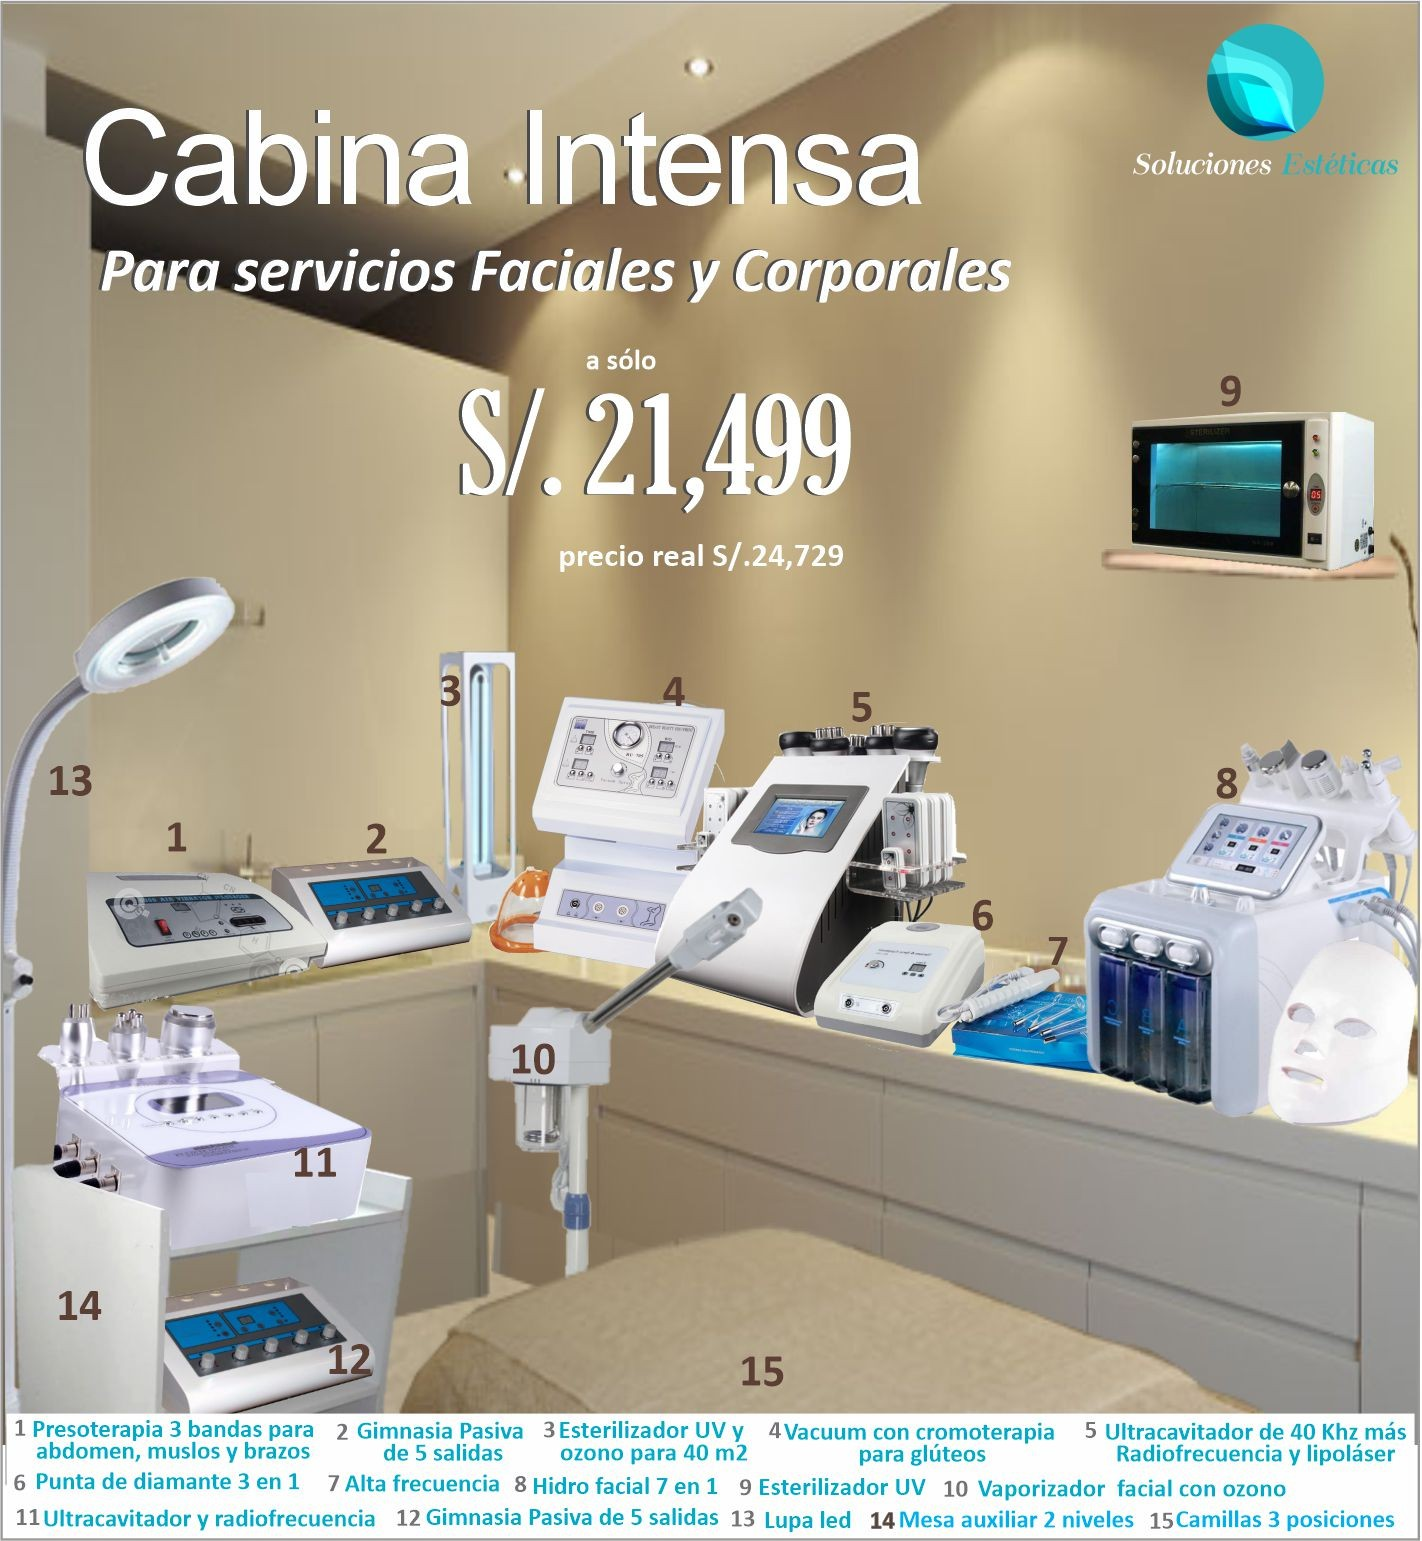 Cabina Intensa